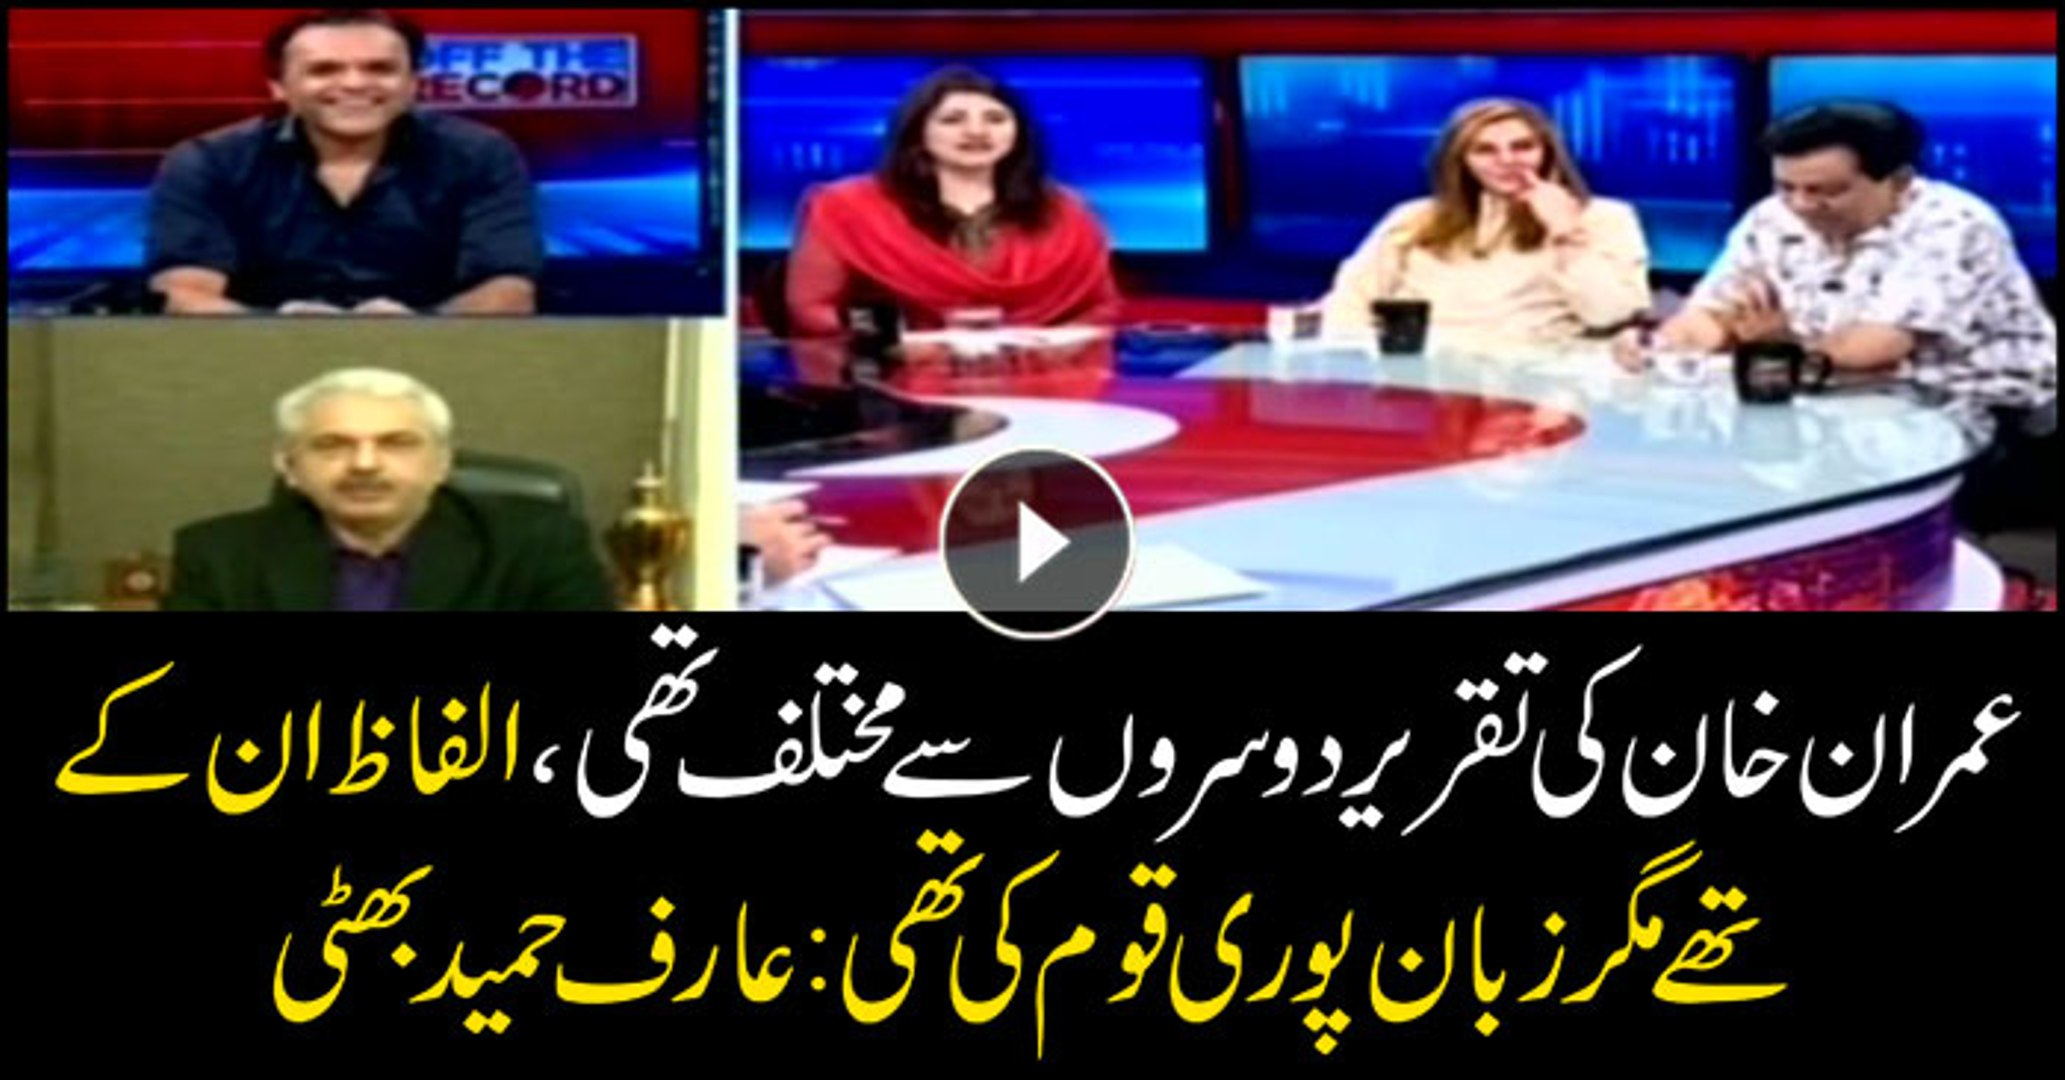 Imran translated sentiments of nation in his speech: Arif Hameed Bhatti